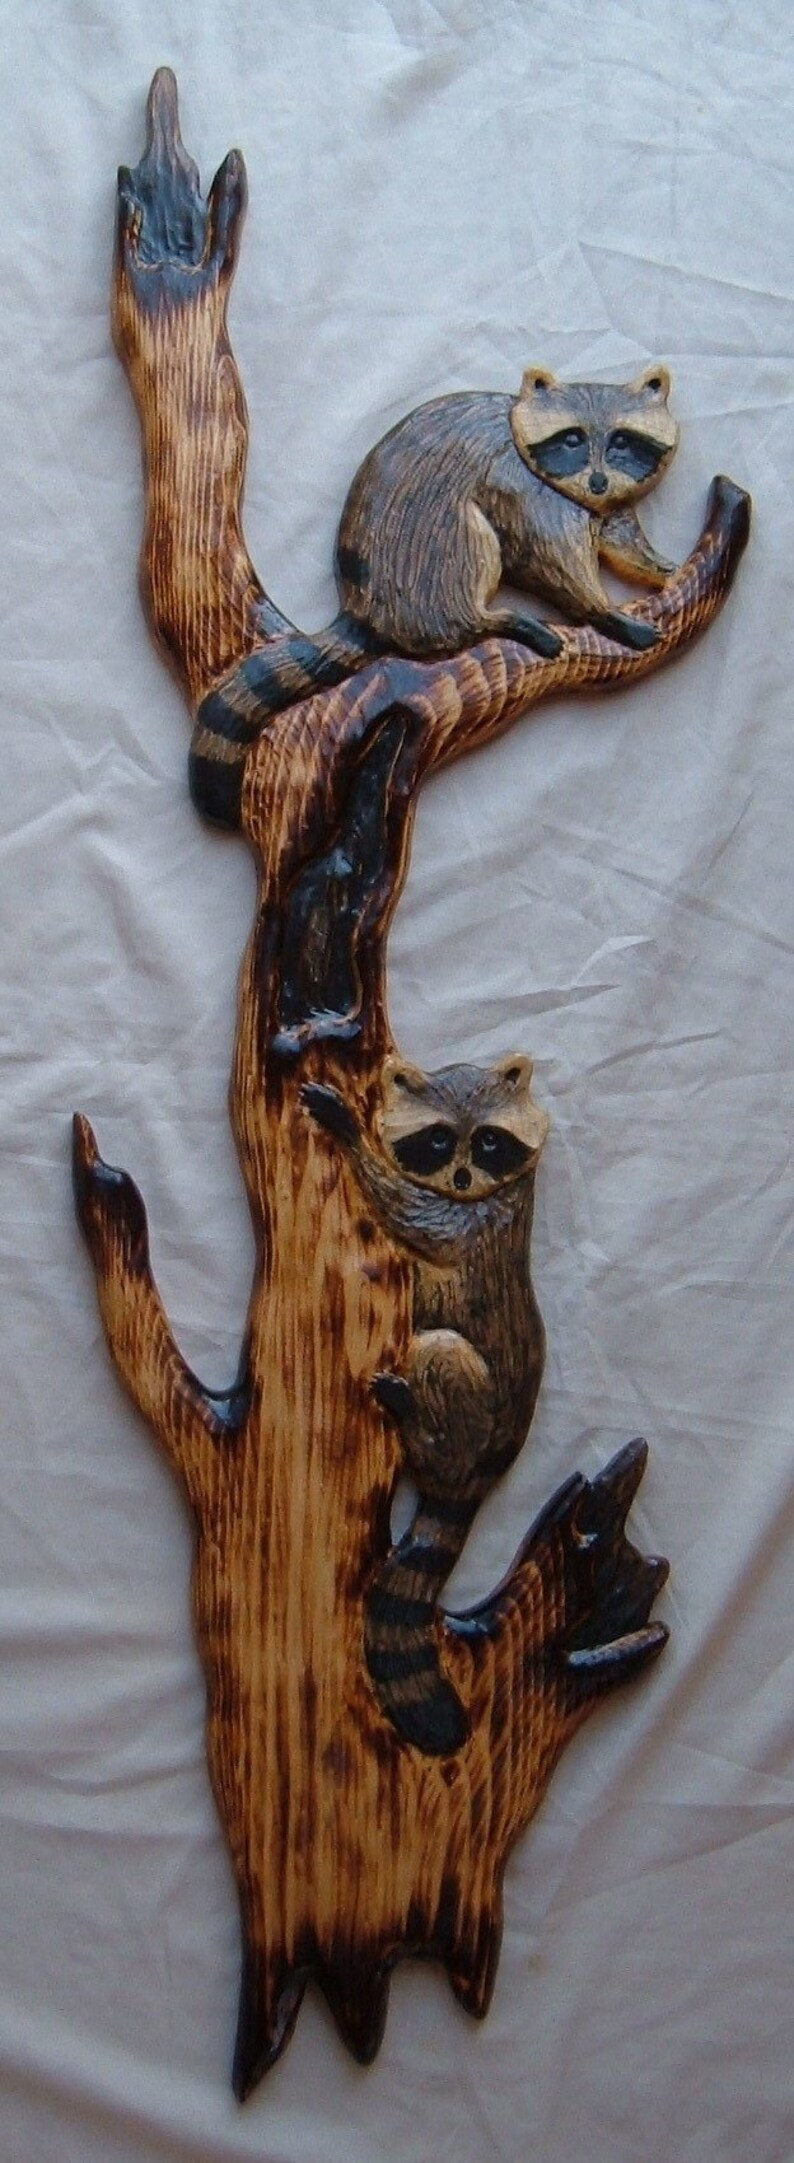 Chainsaw carving wood carving raccoon cabin decor bear wall etsy